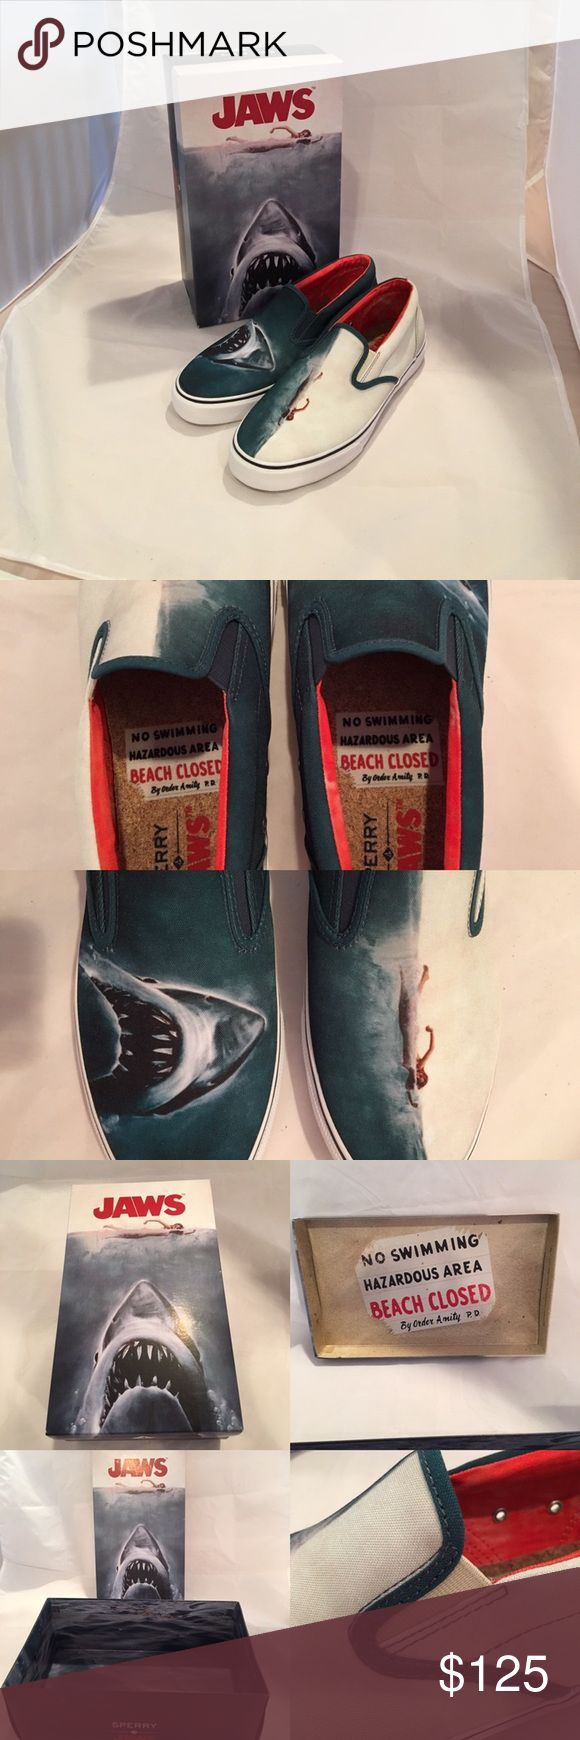 "Sperry's Limited Edition ""JAWS"" boat shoes. Awesome shoe with awesome packaging. Size 11M. Price is firm. Sperry Top-Sider Shoes Boat Shoes"